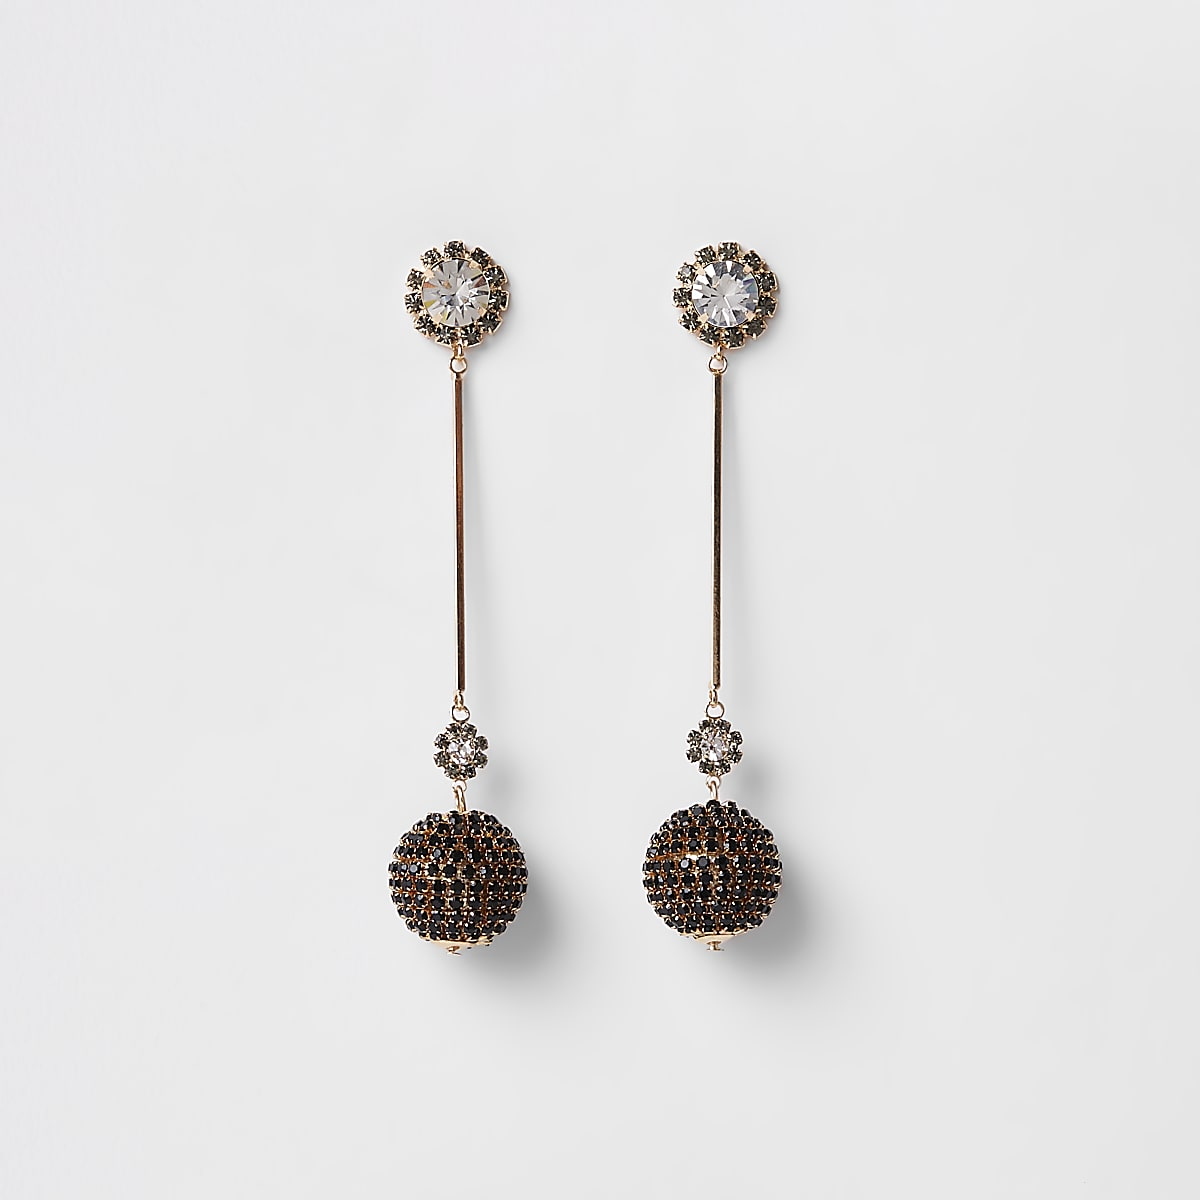 Gold color cup chain ball drop earrings